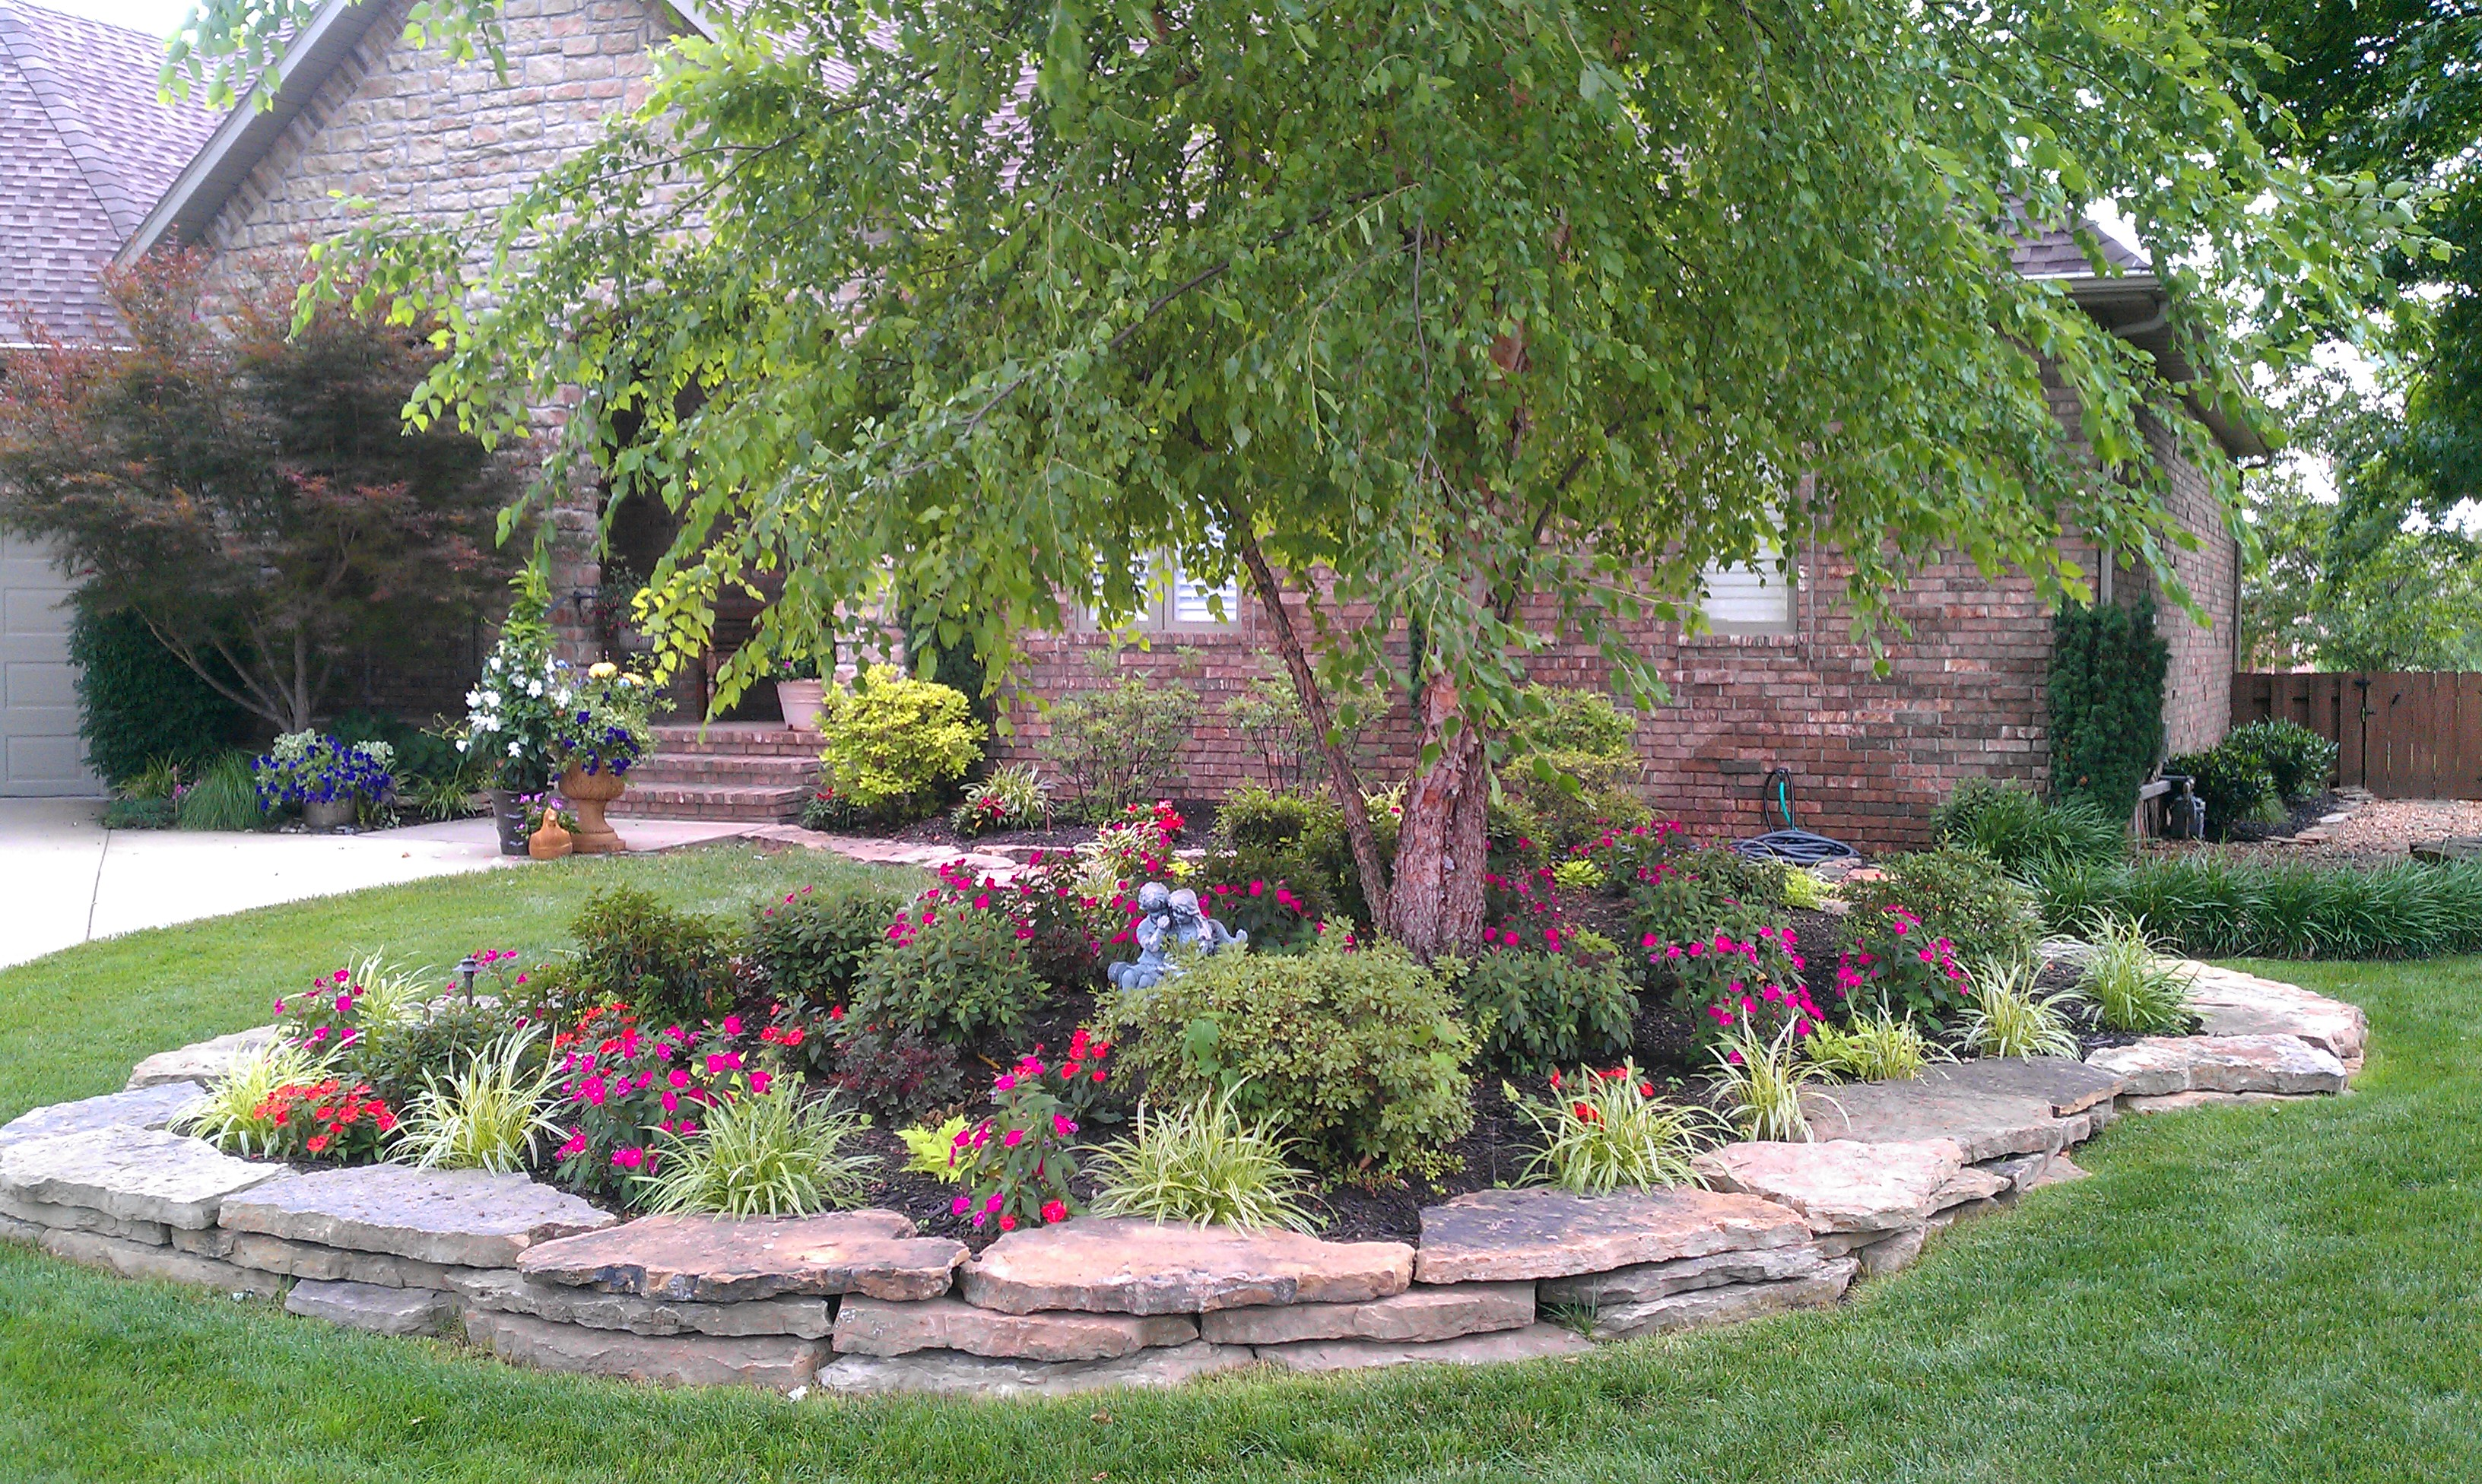 Residential Landscape Design Ideas 3264 x 1952